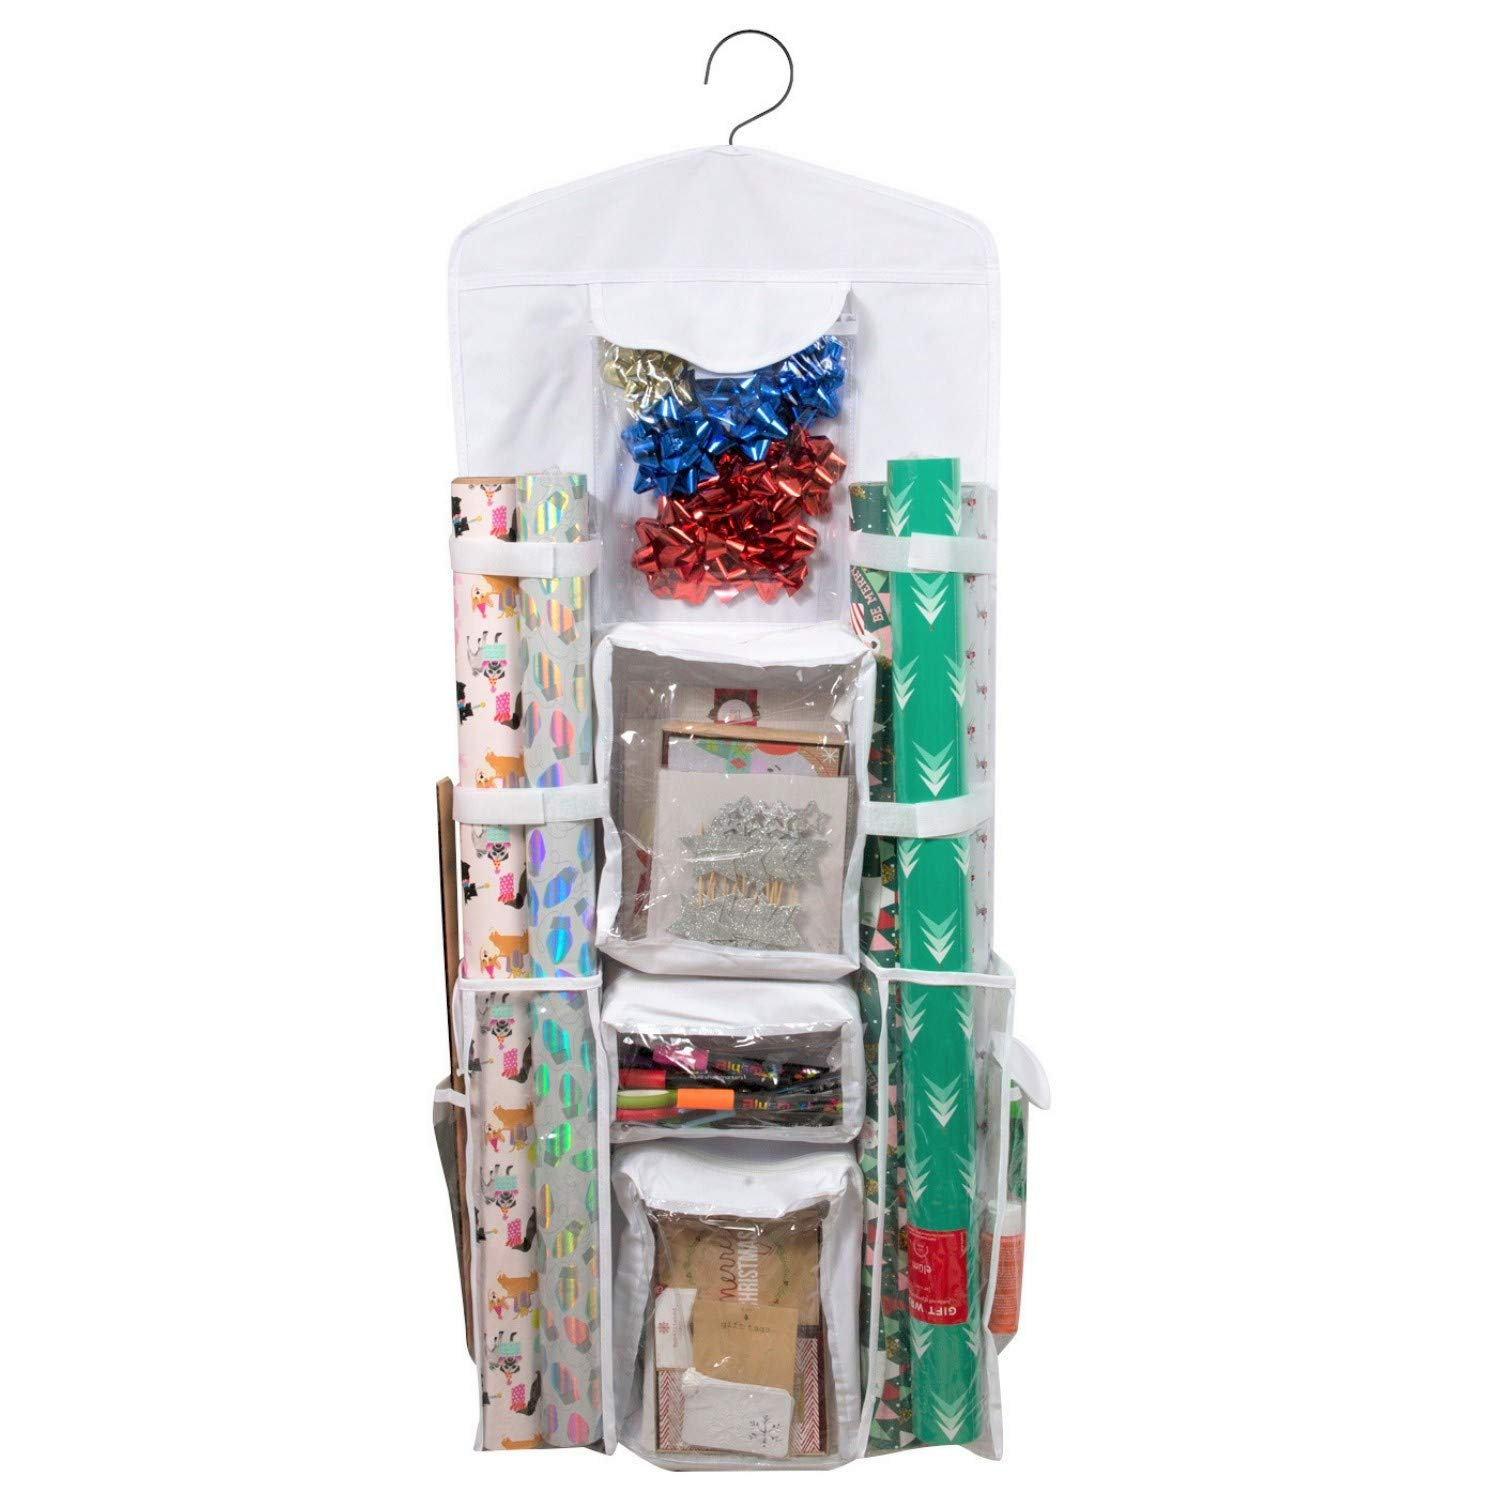 Houseables Wrapping Paper Storage, Gift Wrap Organizer, 10 Pockets, 43'' x 17'', White/Clear, Plastic, Home Closet Organization, Hanging Craft Holder, for Christmas Decorations, Ornaments, Ribbons by Houseables